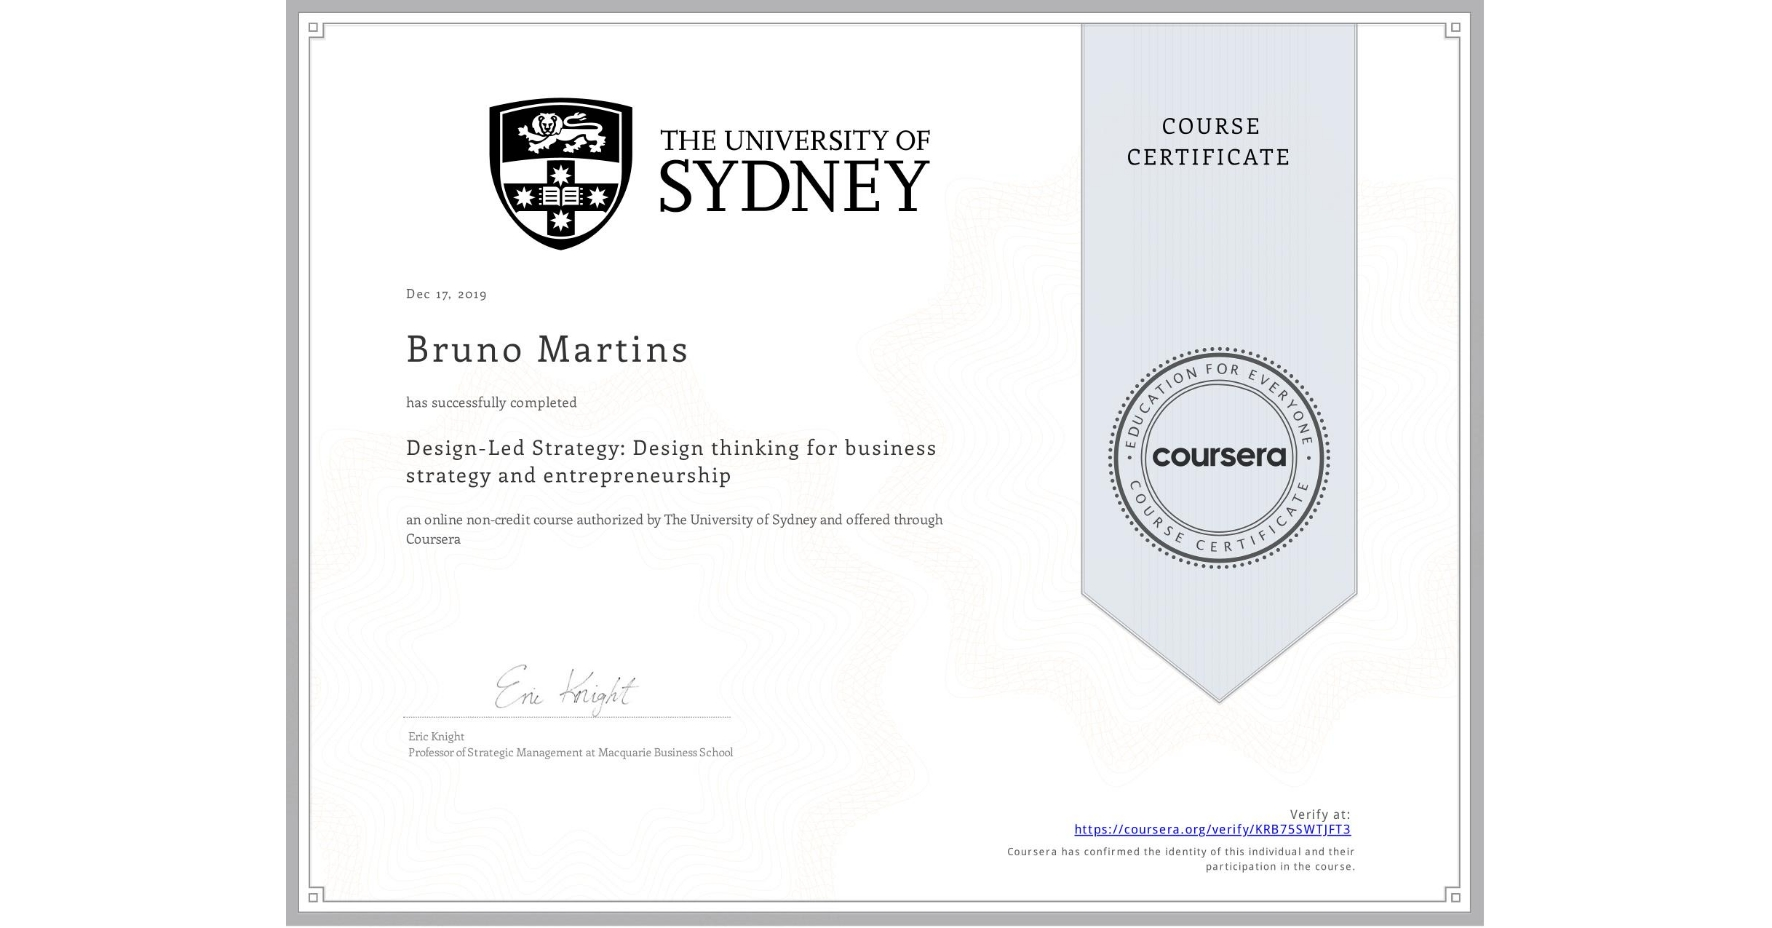 View certificate for Bruno Martins, Design-Led Strategy: Design thinking for business strategy and entrepreneurship, an online non-credit course authorized by The University of Sydney and offered through Coursera